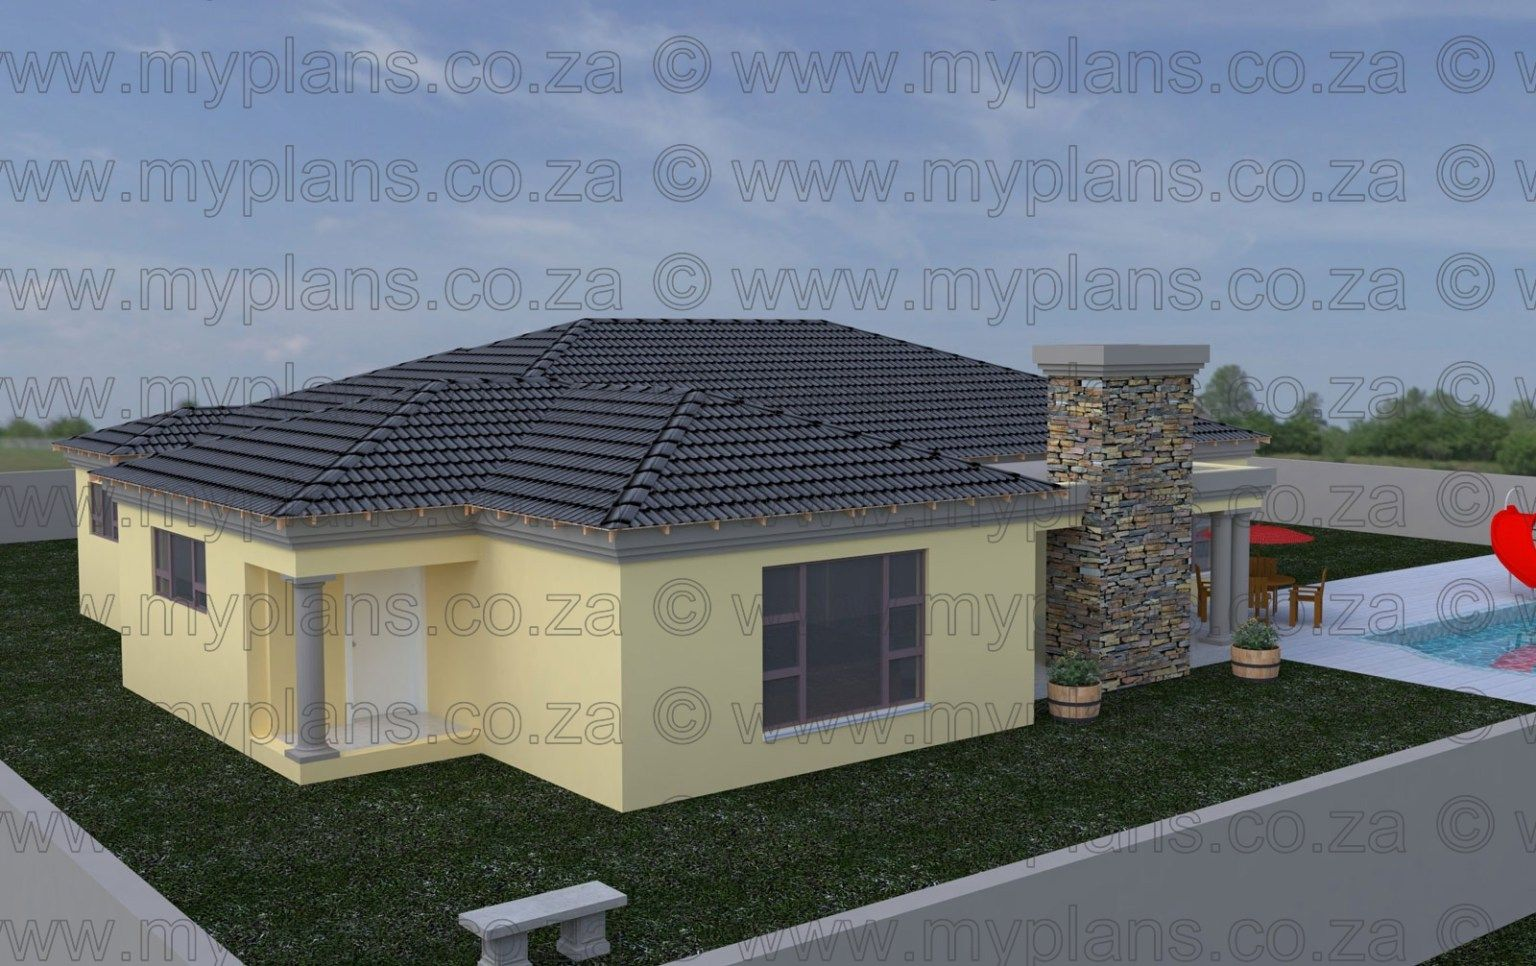 3 Bedroom House Plan MLB-069S | Houses plans in 2019 | House ... on food plans, my own house, office plans, design plans, summer plans, my house design, christmas plans, my house blueprint, my house management, wedding plans, my house books, make your own plans, my house projects, my modern house, travel plans, reading plans, dream home plans, draw your own deck plans, my house goals, diy plans,